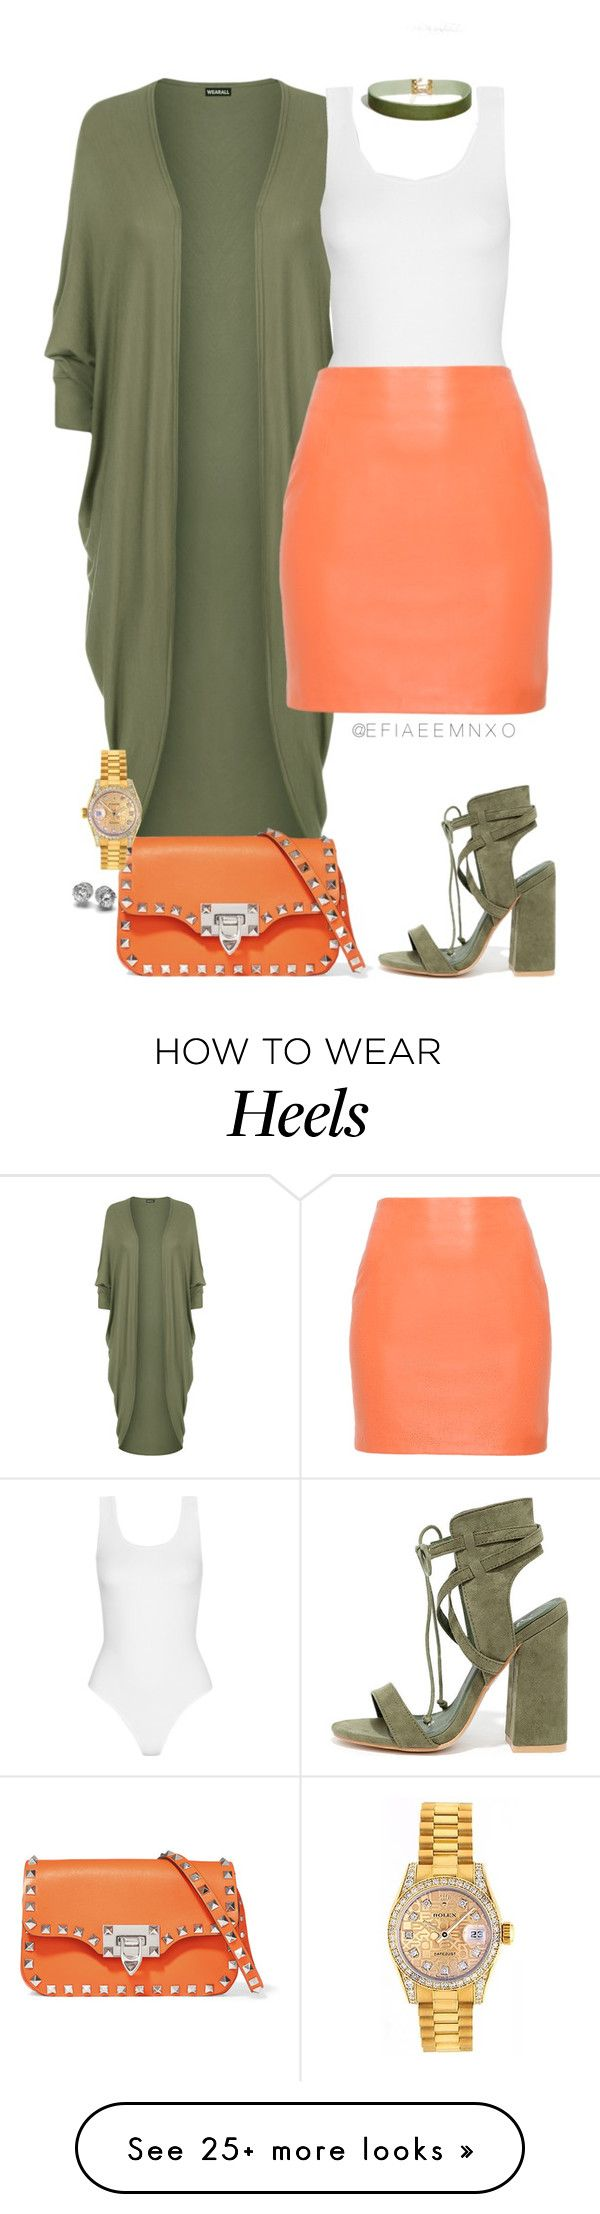 """""""Cheers"""" by efiaeemnxo on Polyvore featuring ASOS, WearAll, Yummie by Heather…"""